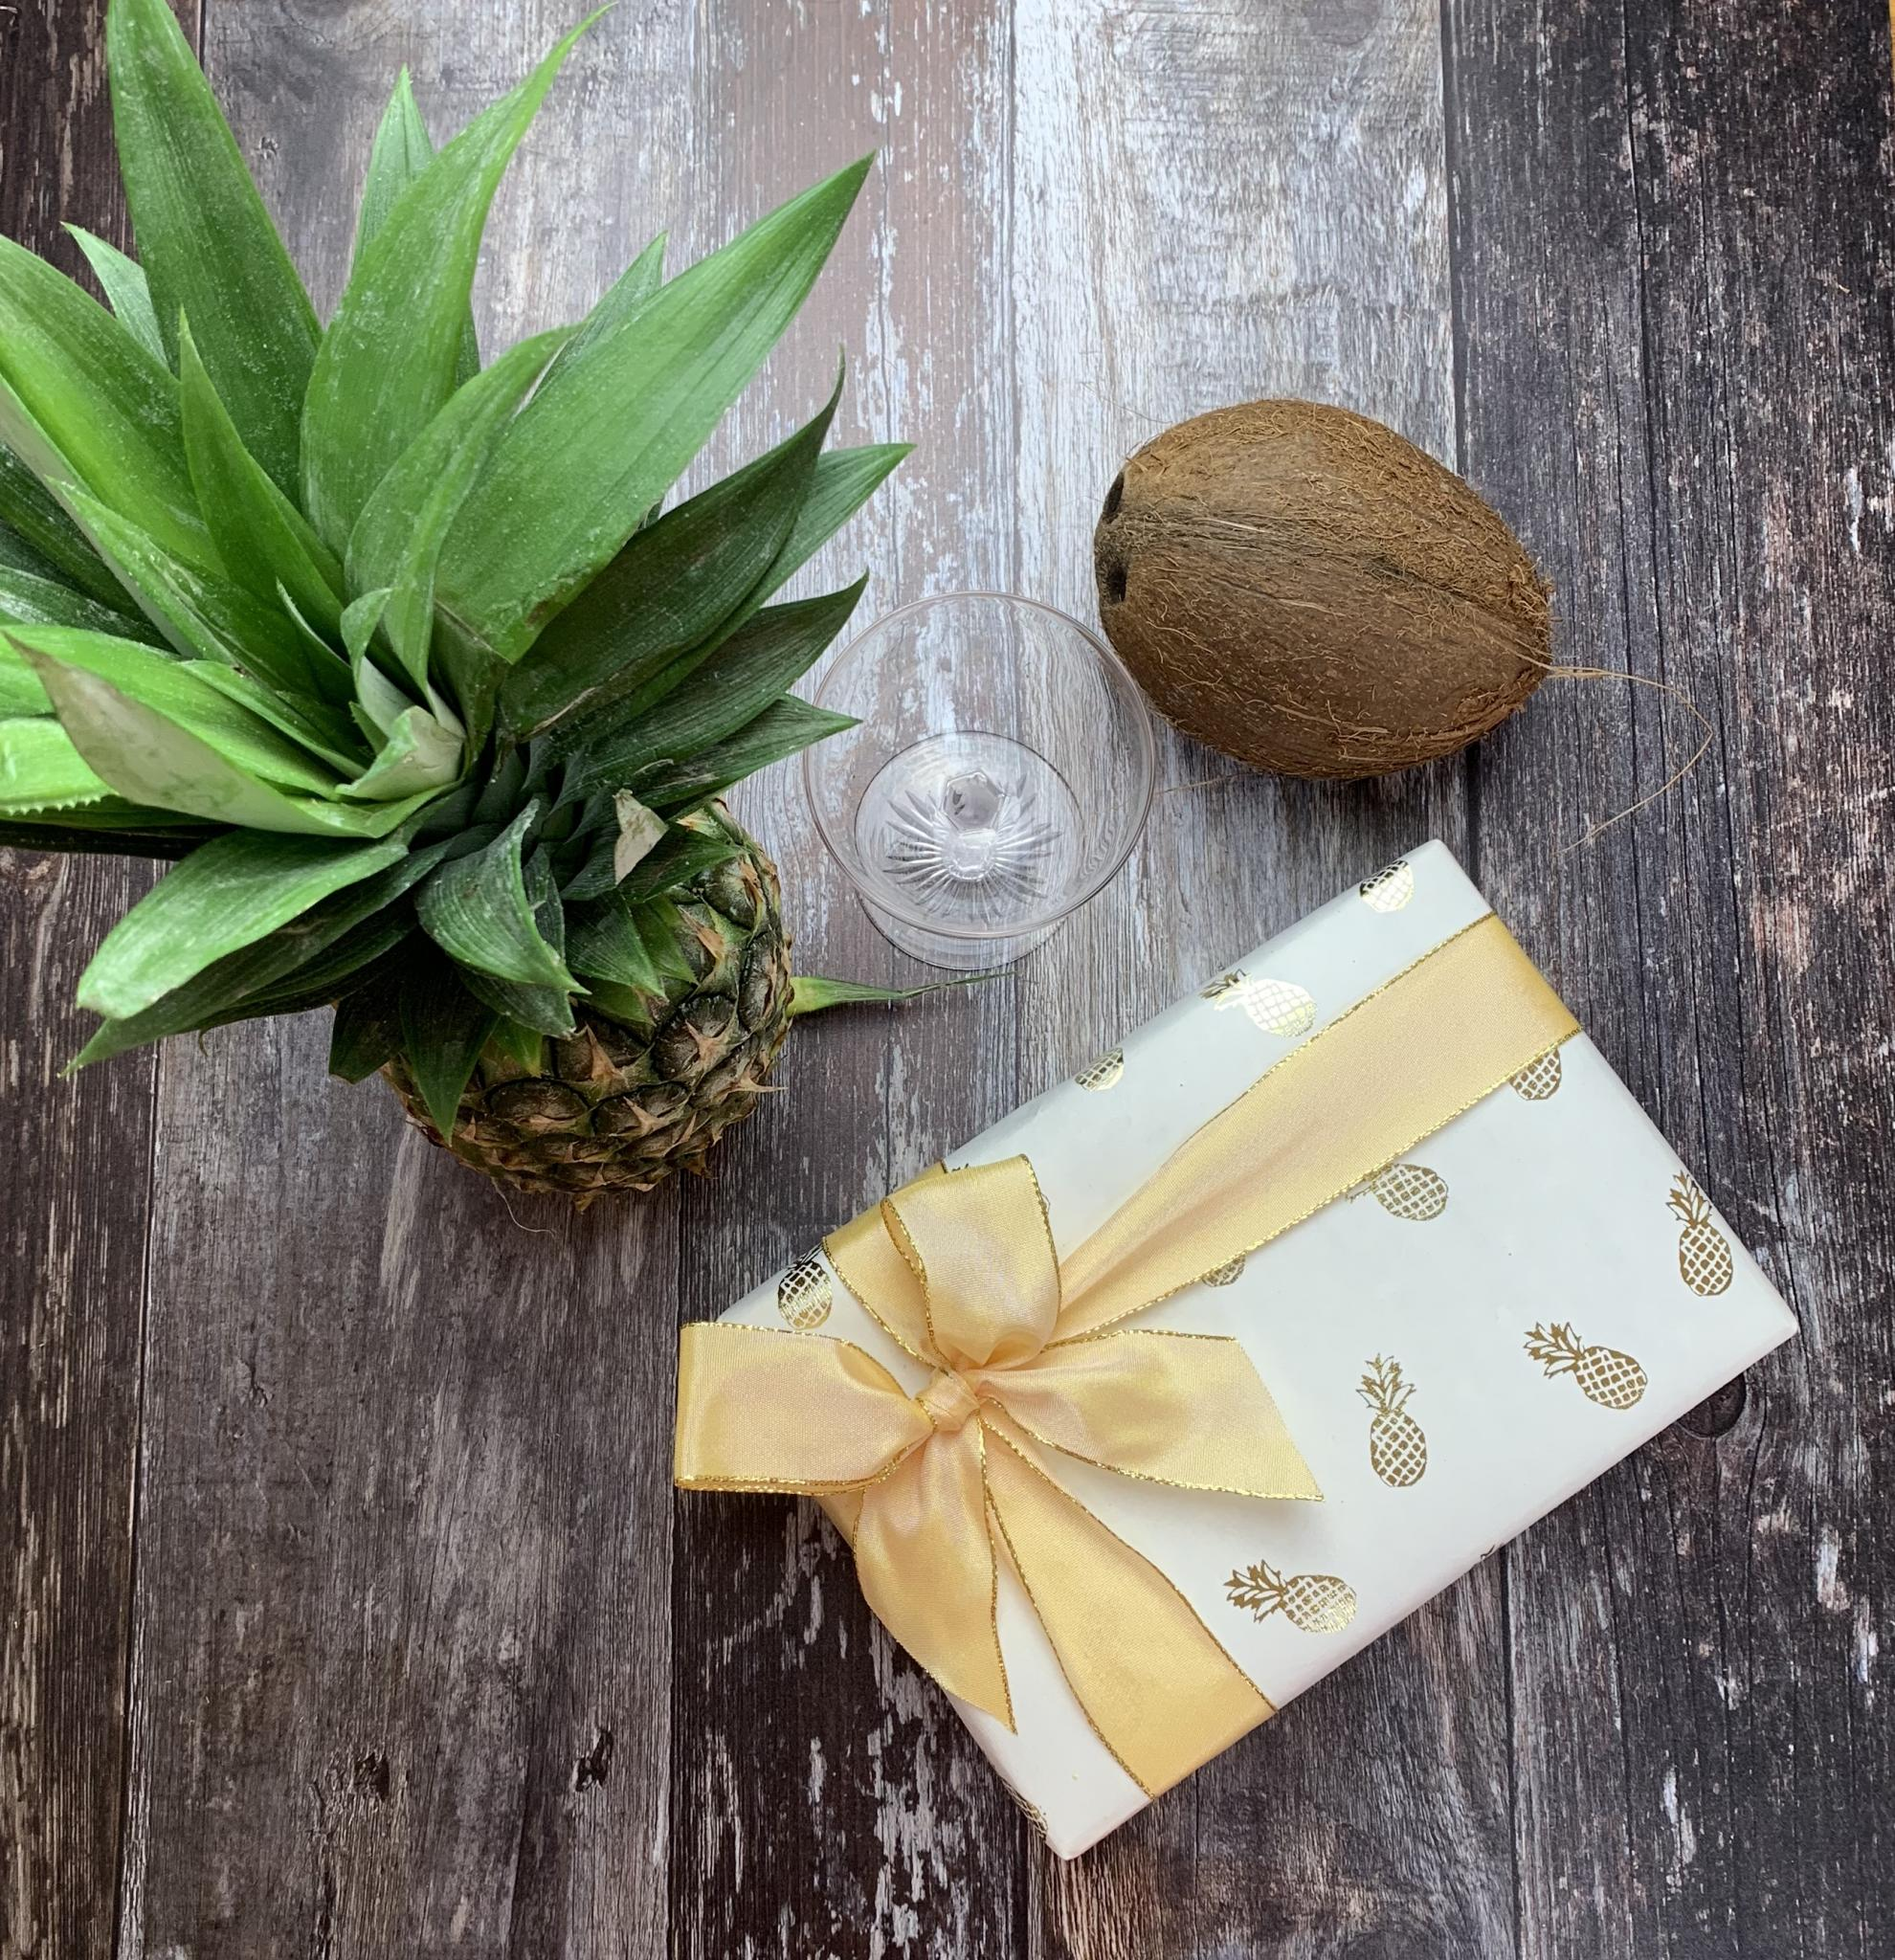 Pineapple giftwrapped box with a fresh pineapple, coconut & cocktail glass